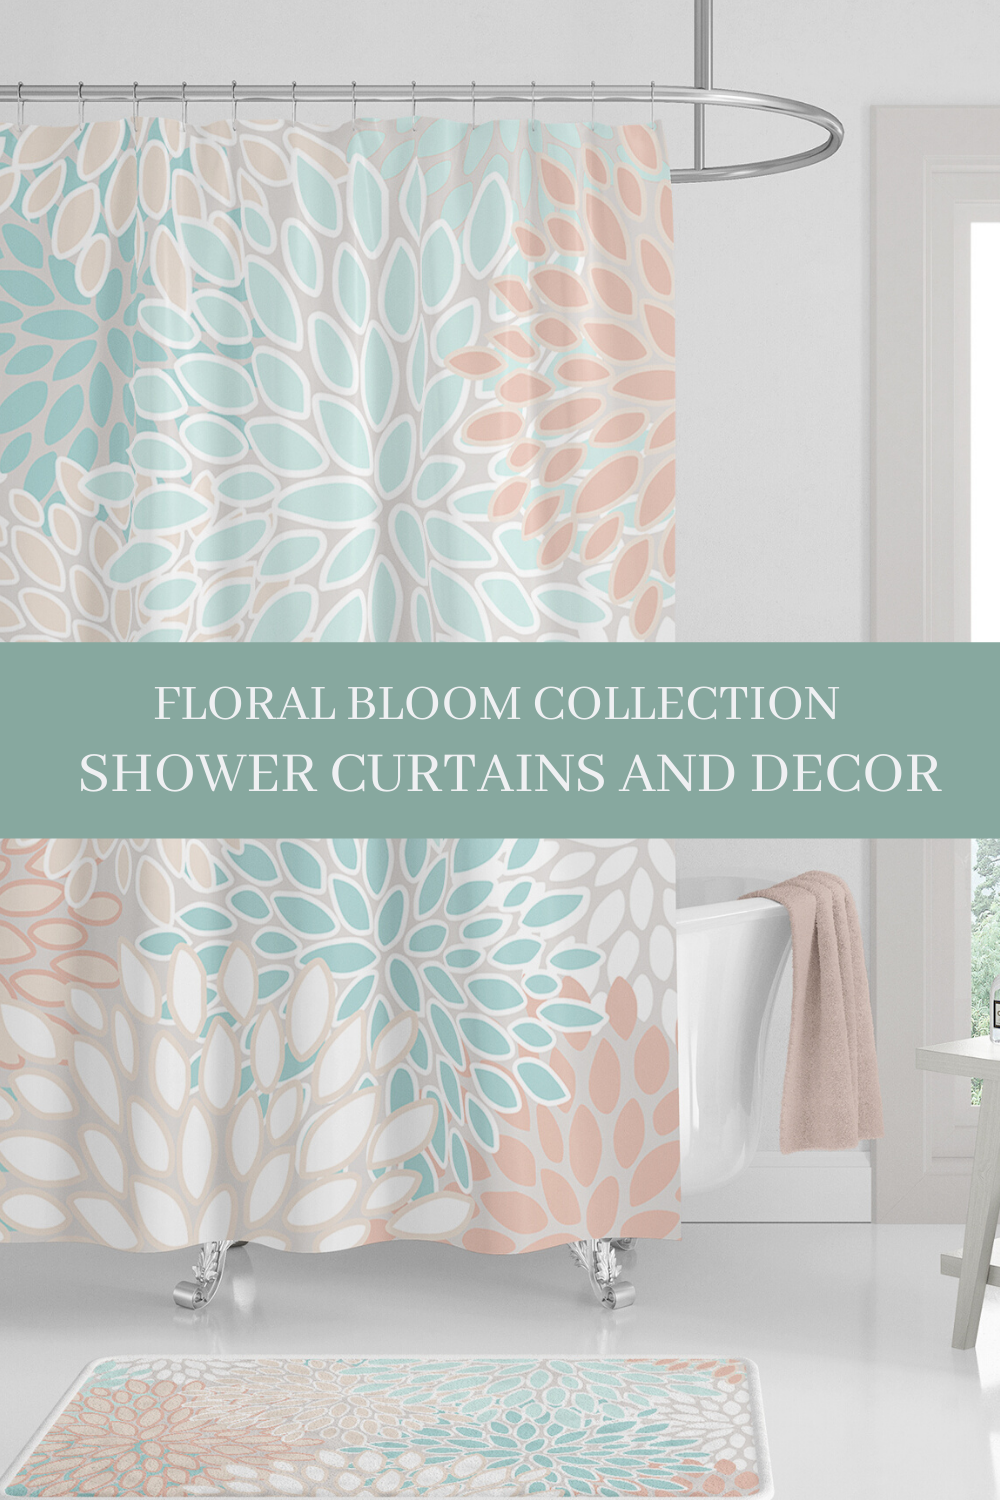 Coral Shower Curtains With Aqua And Teal Elegant Floral Shower Curtains In 2020 Coral Shower Curtains Floral Shower Curtains Shower Curtain